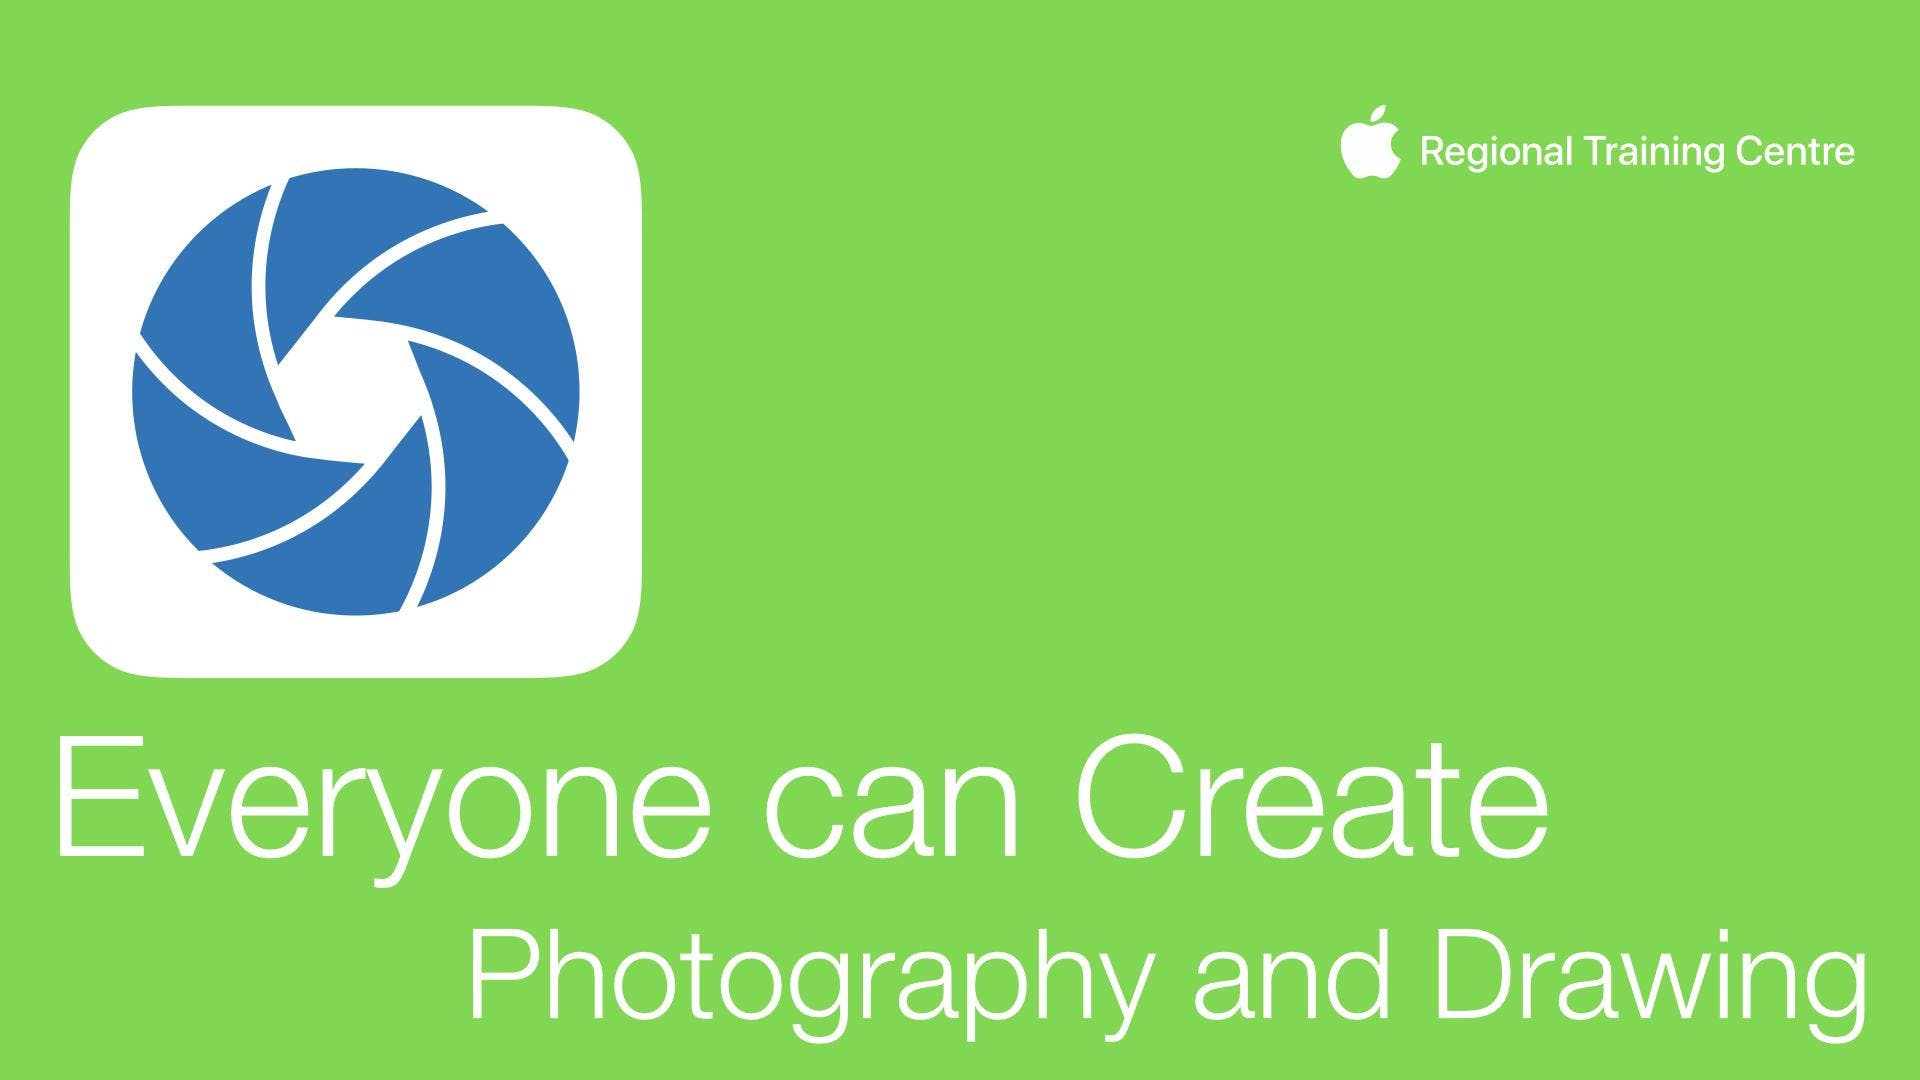 Everyone can create - Photography and Drawing